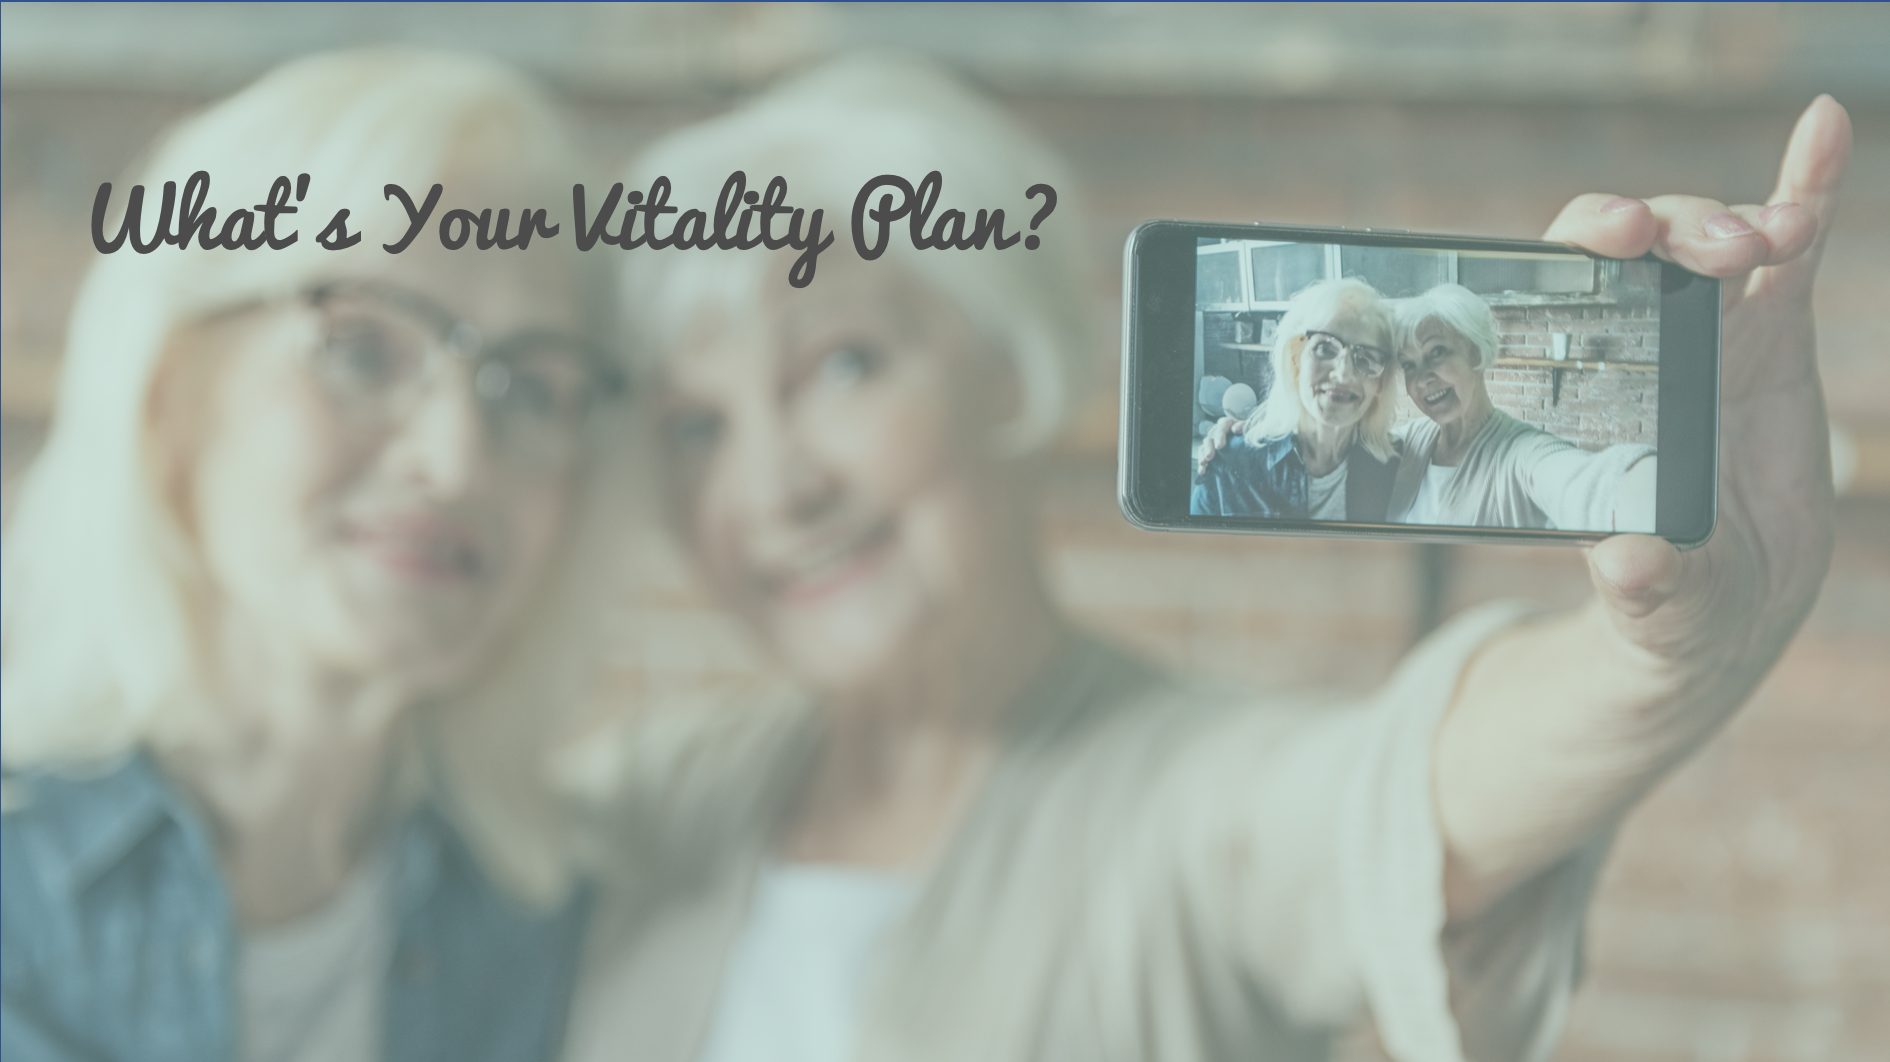 Blog - Whats Your Vitality Plan